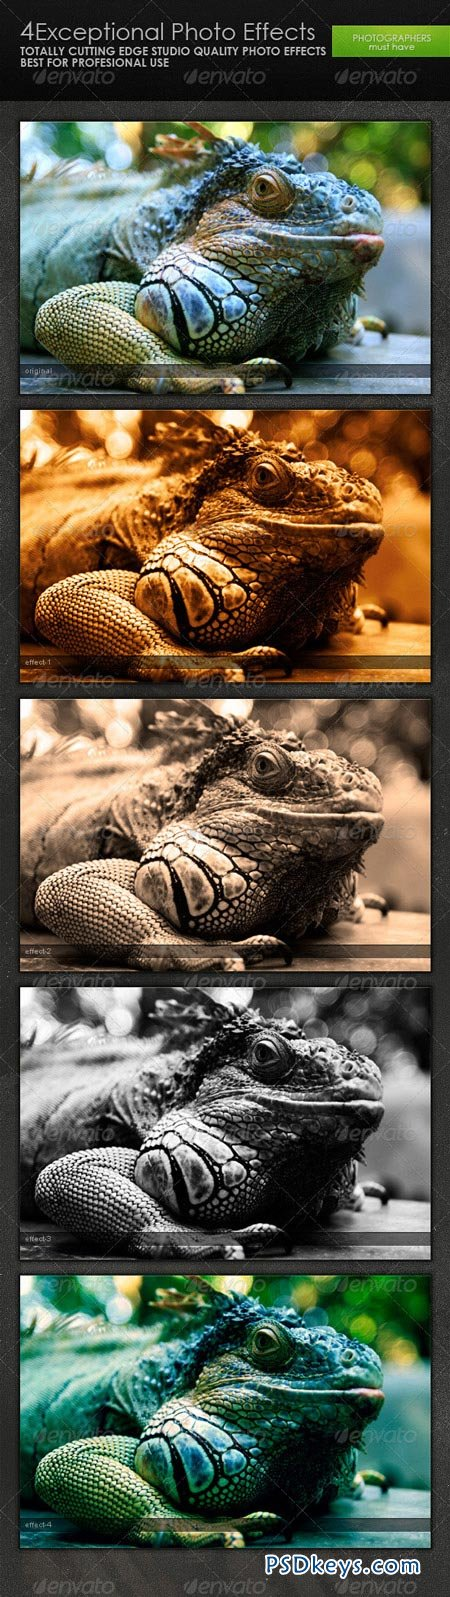 Exceptional Photo Effects 235971